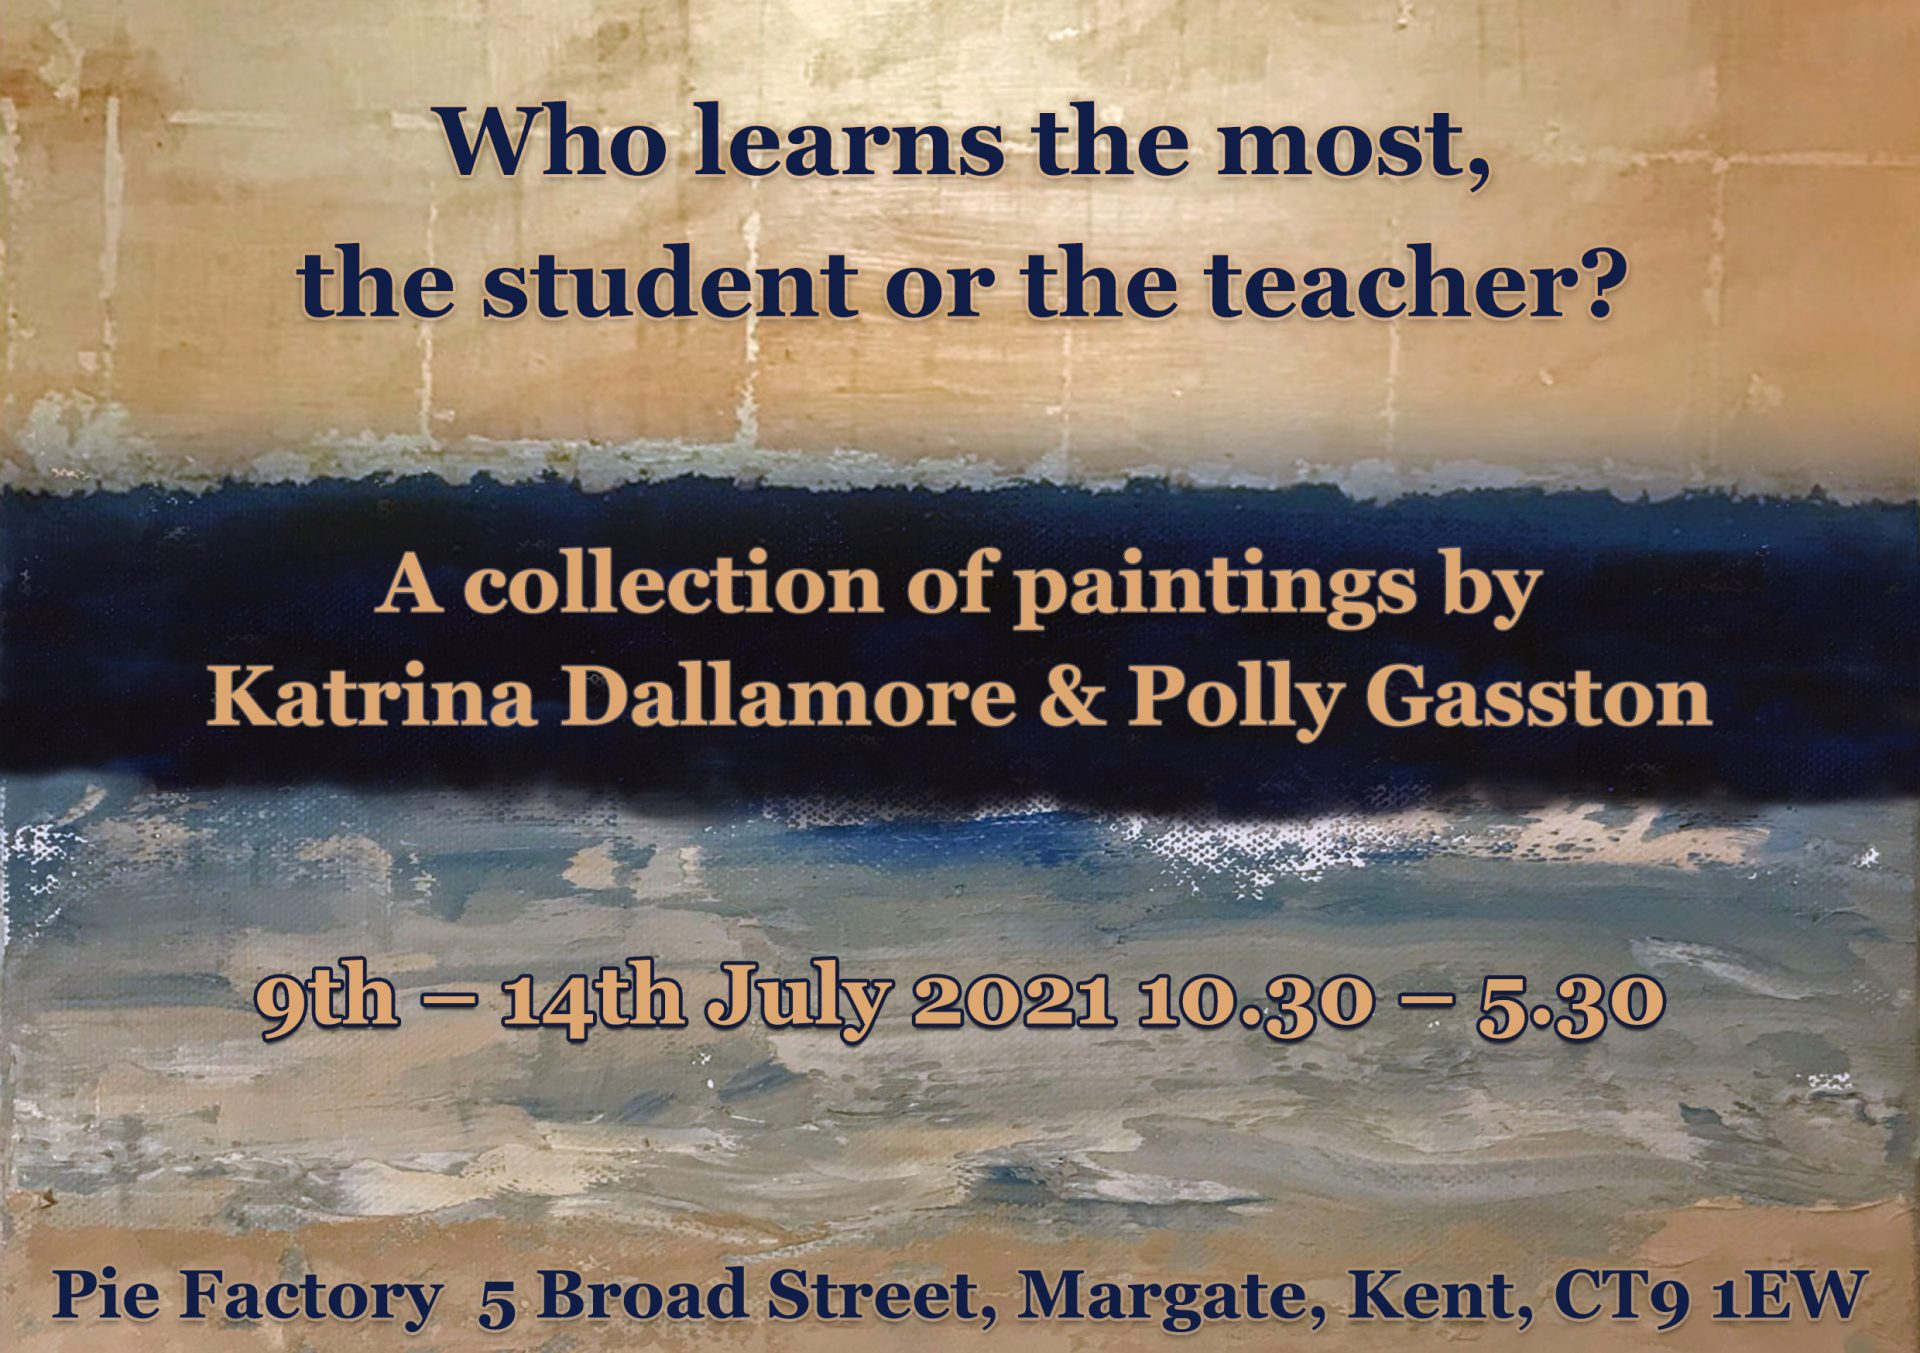 Who learns most, the student or the teacher - Katrina Dallamore & Polly Gasston at Pie Factory Gallery Margate